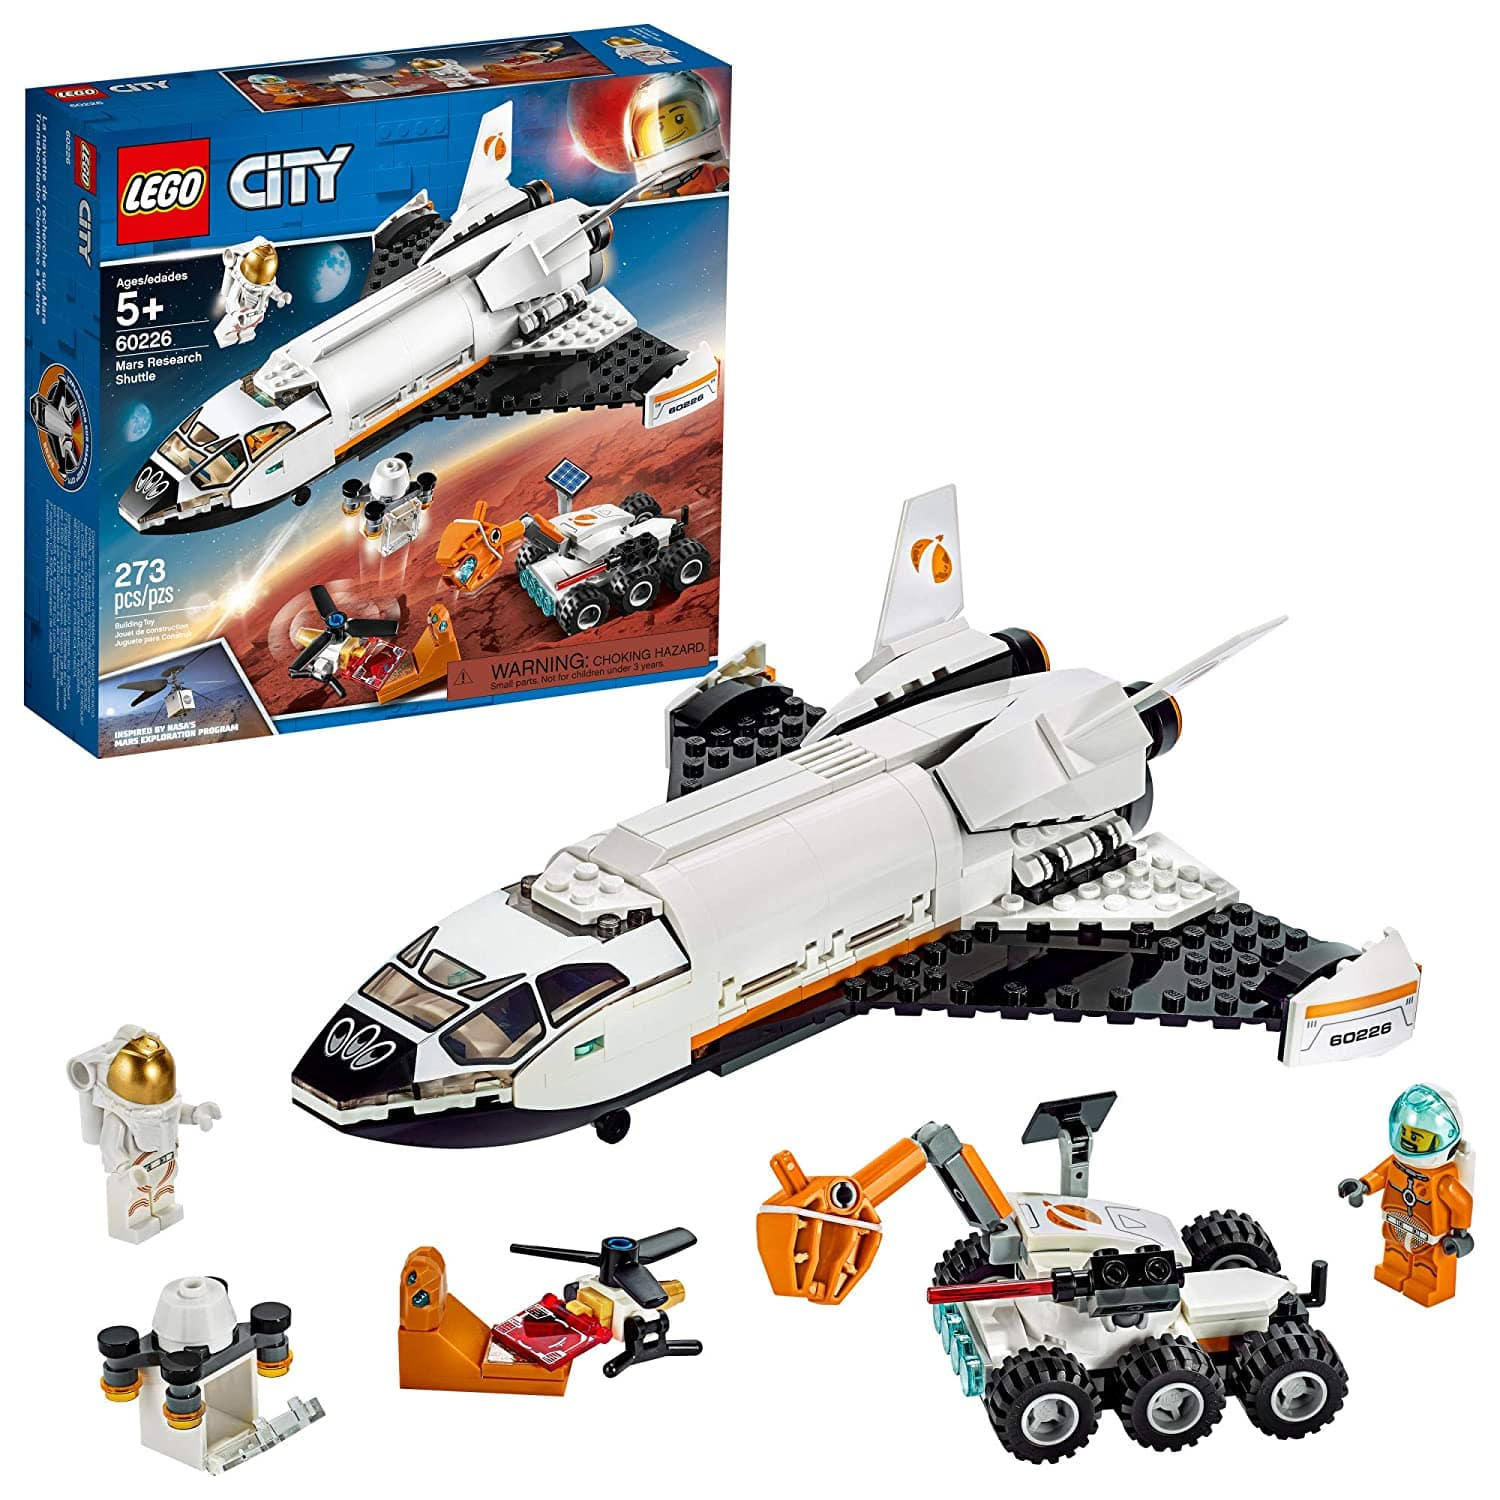 LEGO City Space Mars Research Shuttle 60226 Space Shuttle Toy Building Kit with Mars Rover and Astronaut Minifigures for $31.99 + FSSS